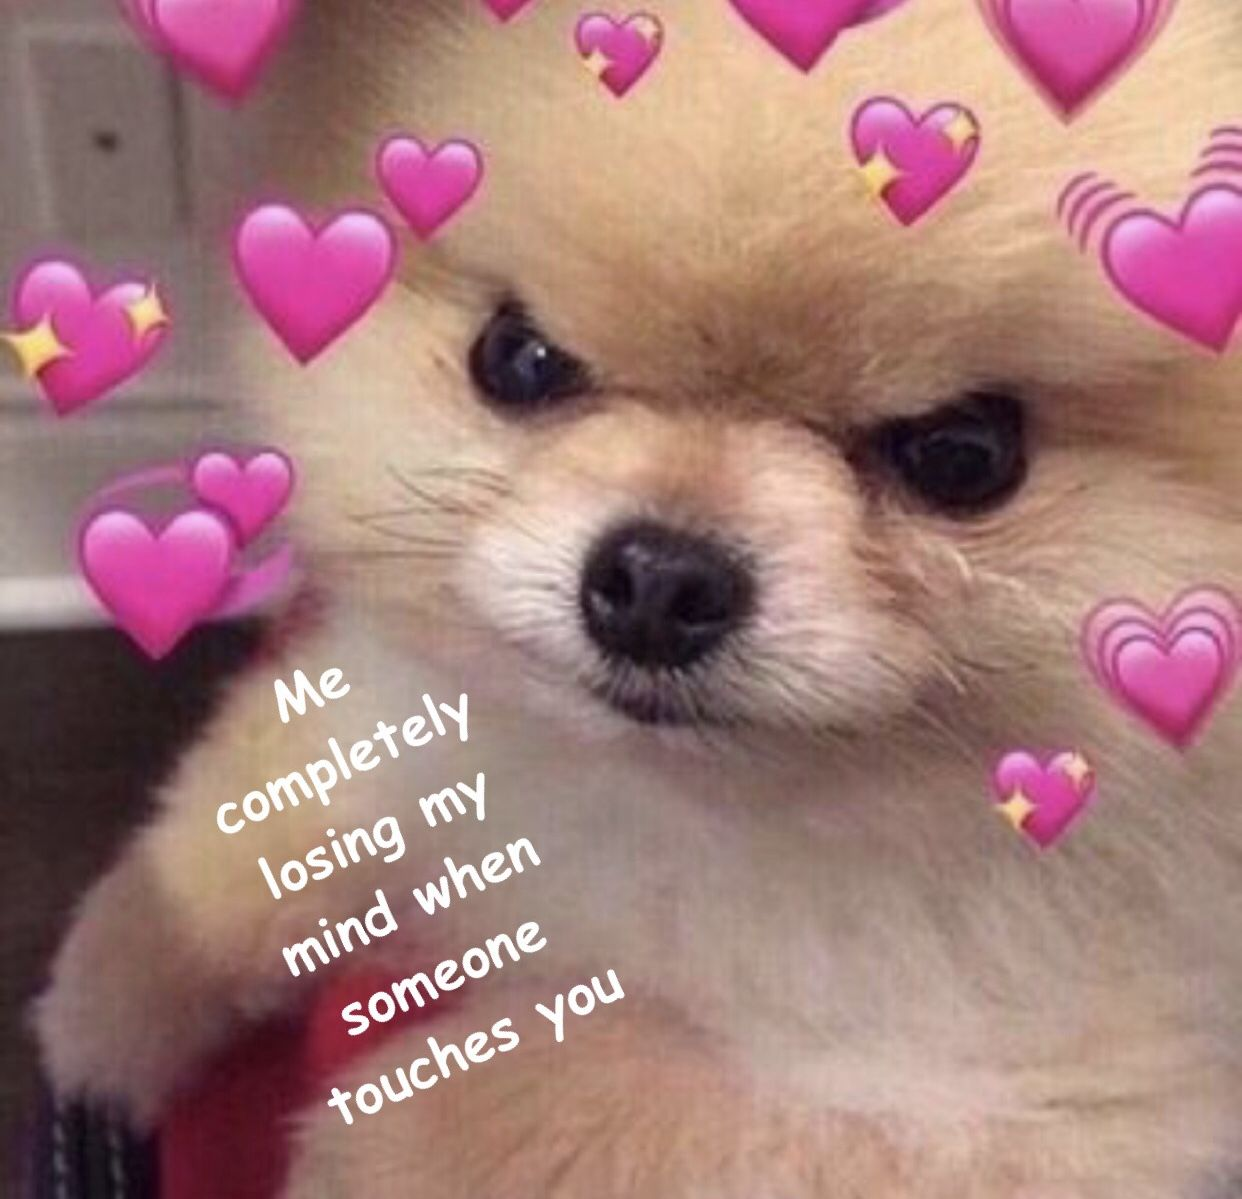 Pin by ・。𝔍𝔬𝔰𝔦𝔢。・ on Lovey Feels Cute love memes